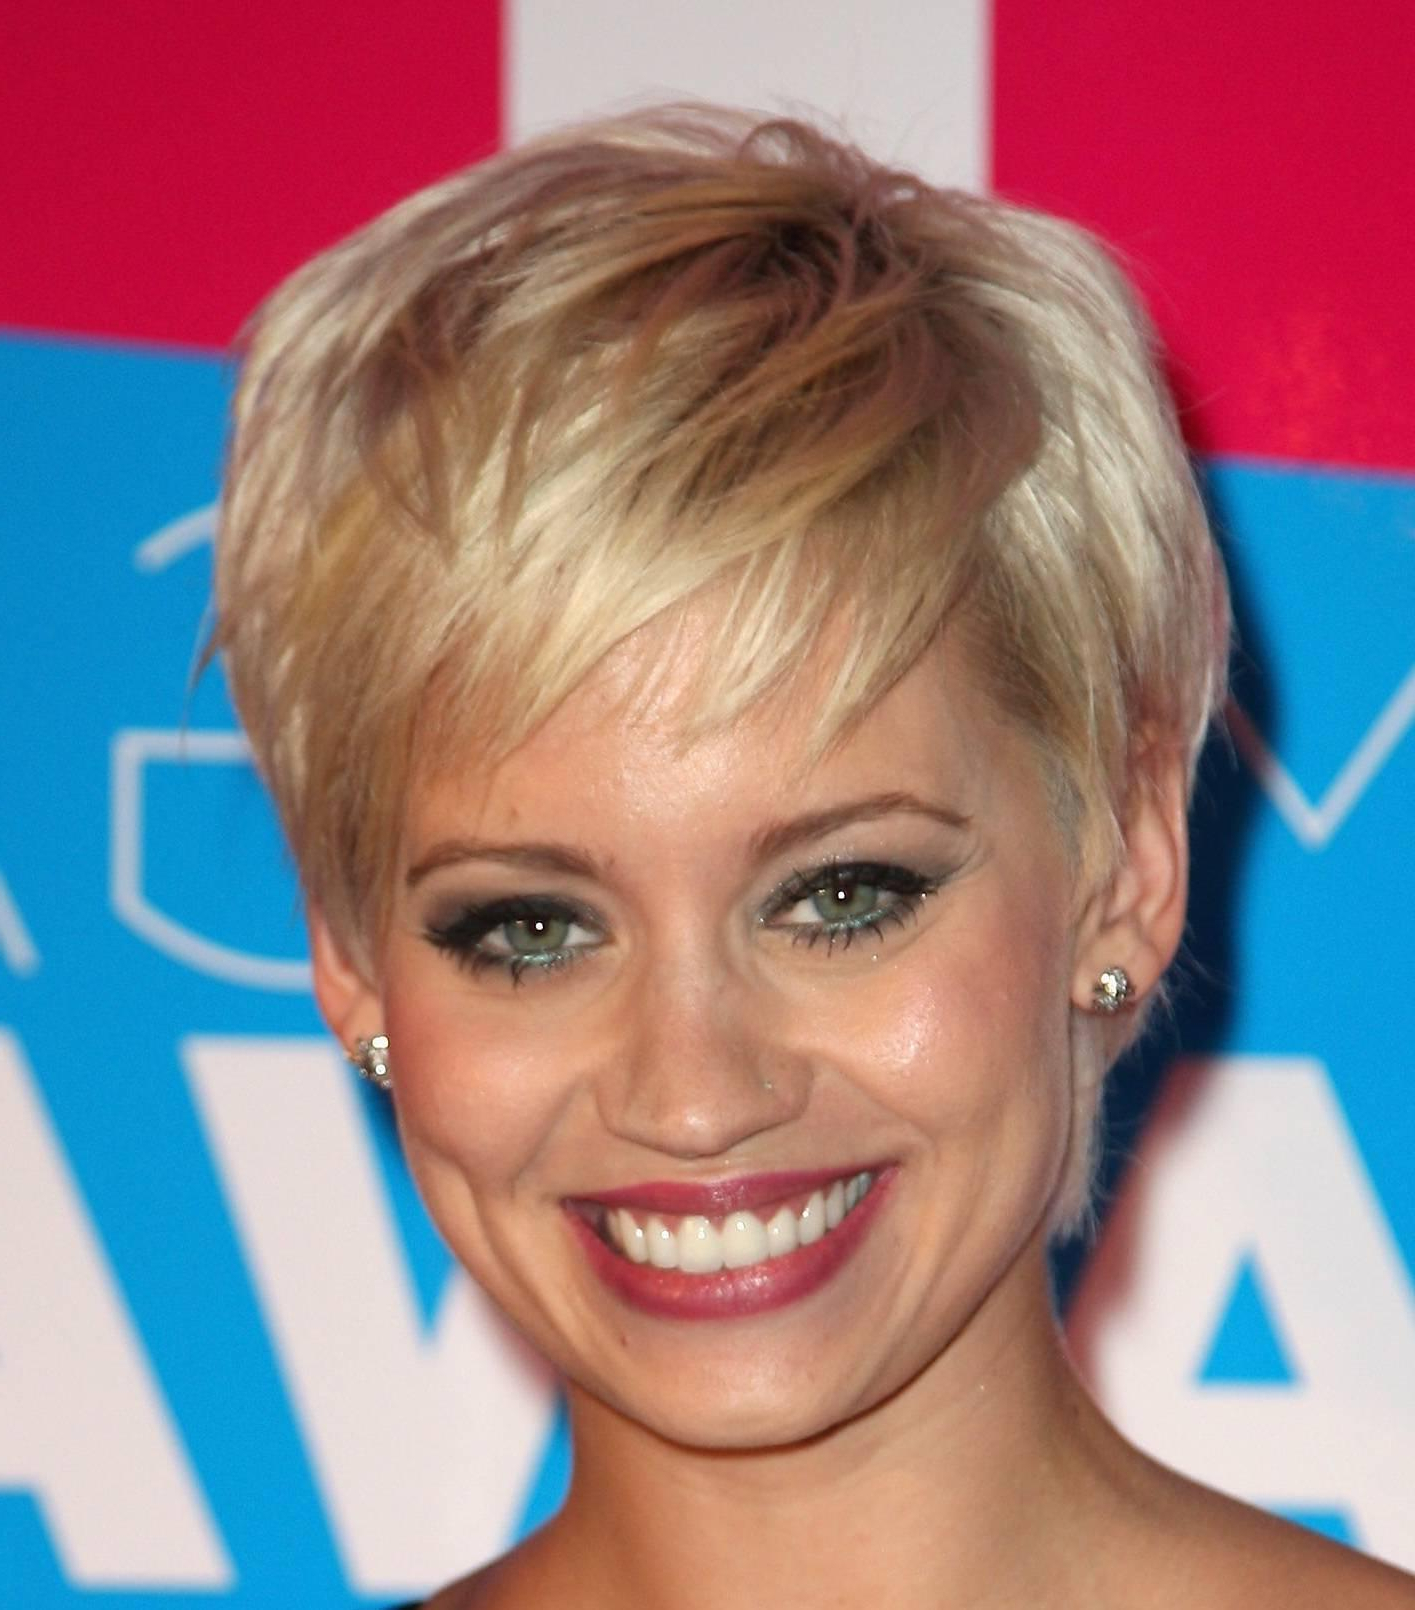 Elegant Pixie Haircut 2016 For Round Face Inspiration Inside Short Hairstyles For Fine Hair And Fat Face (View 23 of 25)